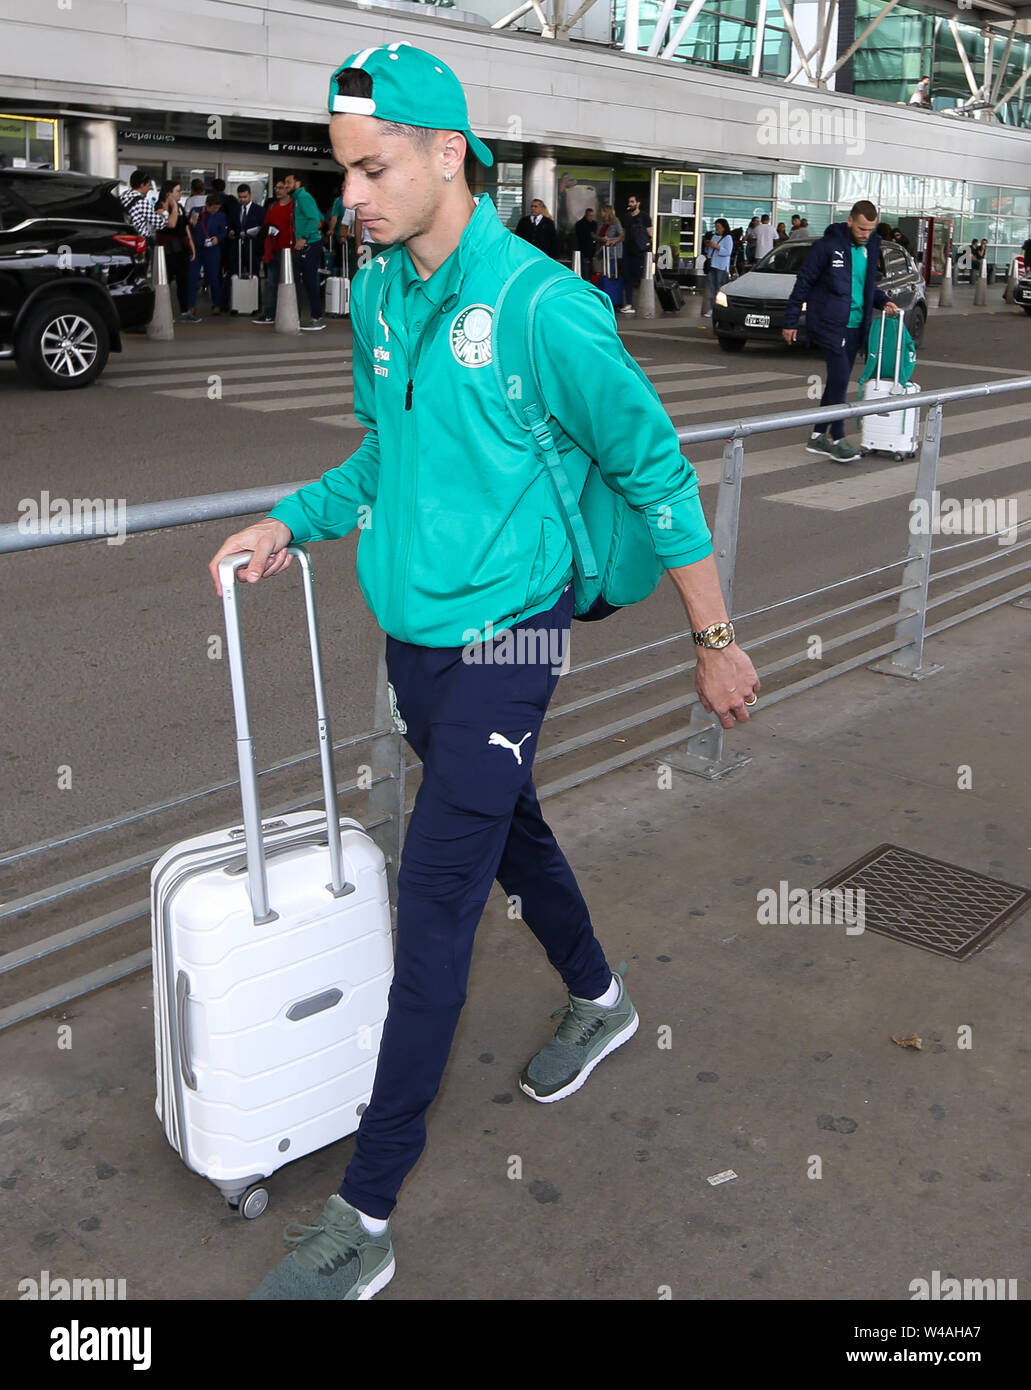 Buenos Aires, Argentina. 21st July, 2019. SE Palmeiras player Diogo Barbosa during disembarkation at Buenos Aires International Airport. Credit: Cesar Greco/FotoArena/Alamy Live News - Stock Image